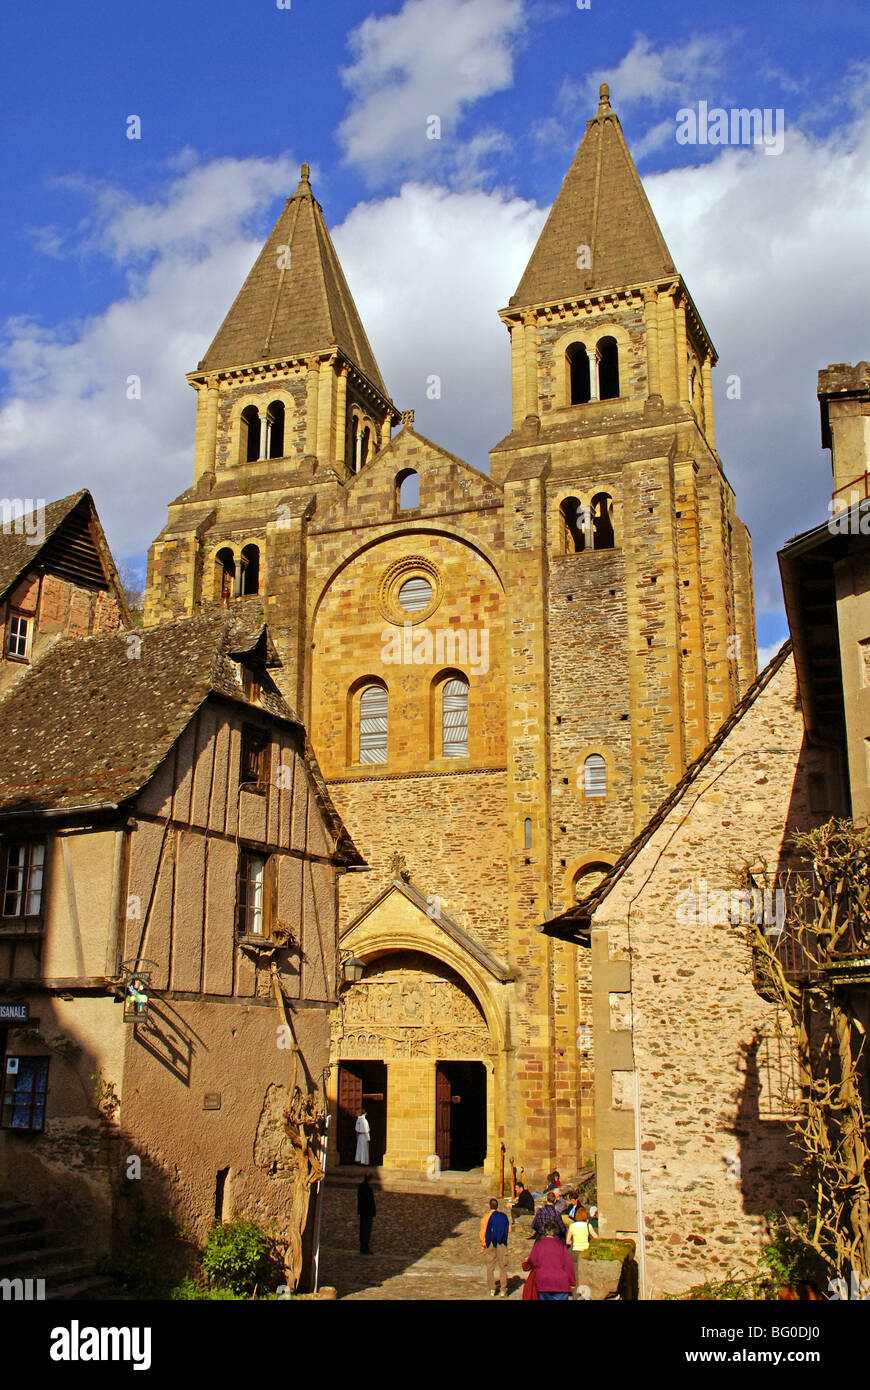 The old pilgrimage town of Conques in France, and the Abbey Church of Sainte Foy. - Stock Image